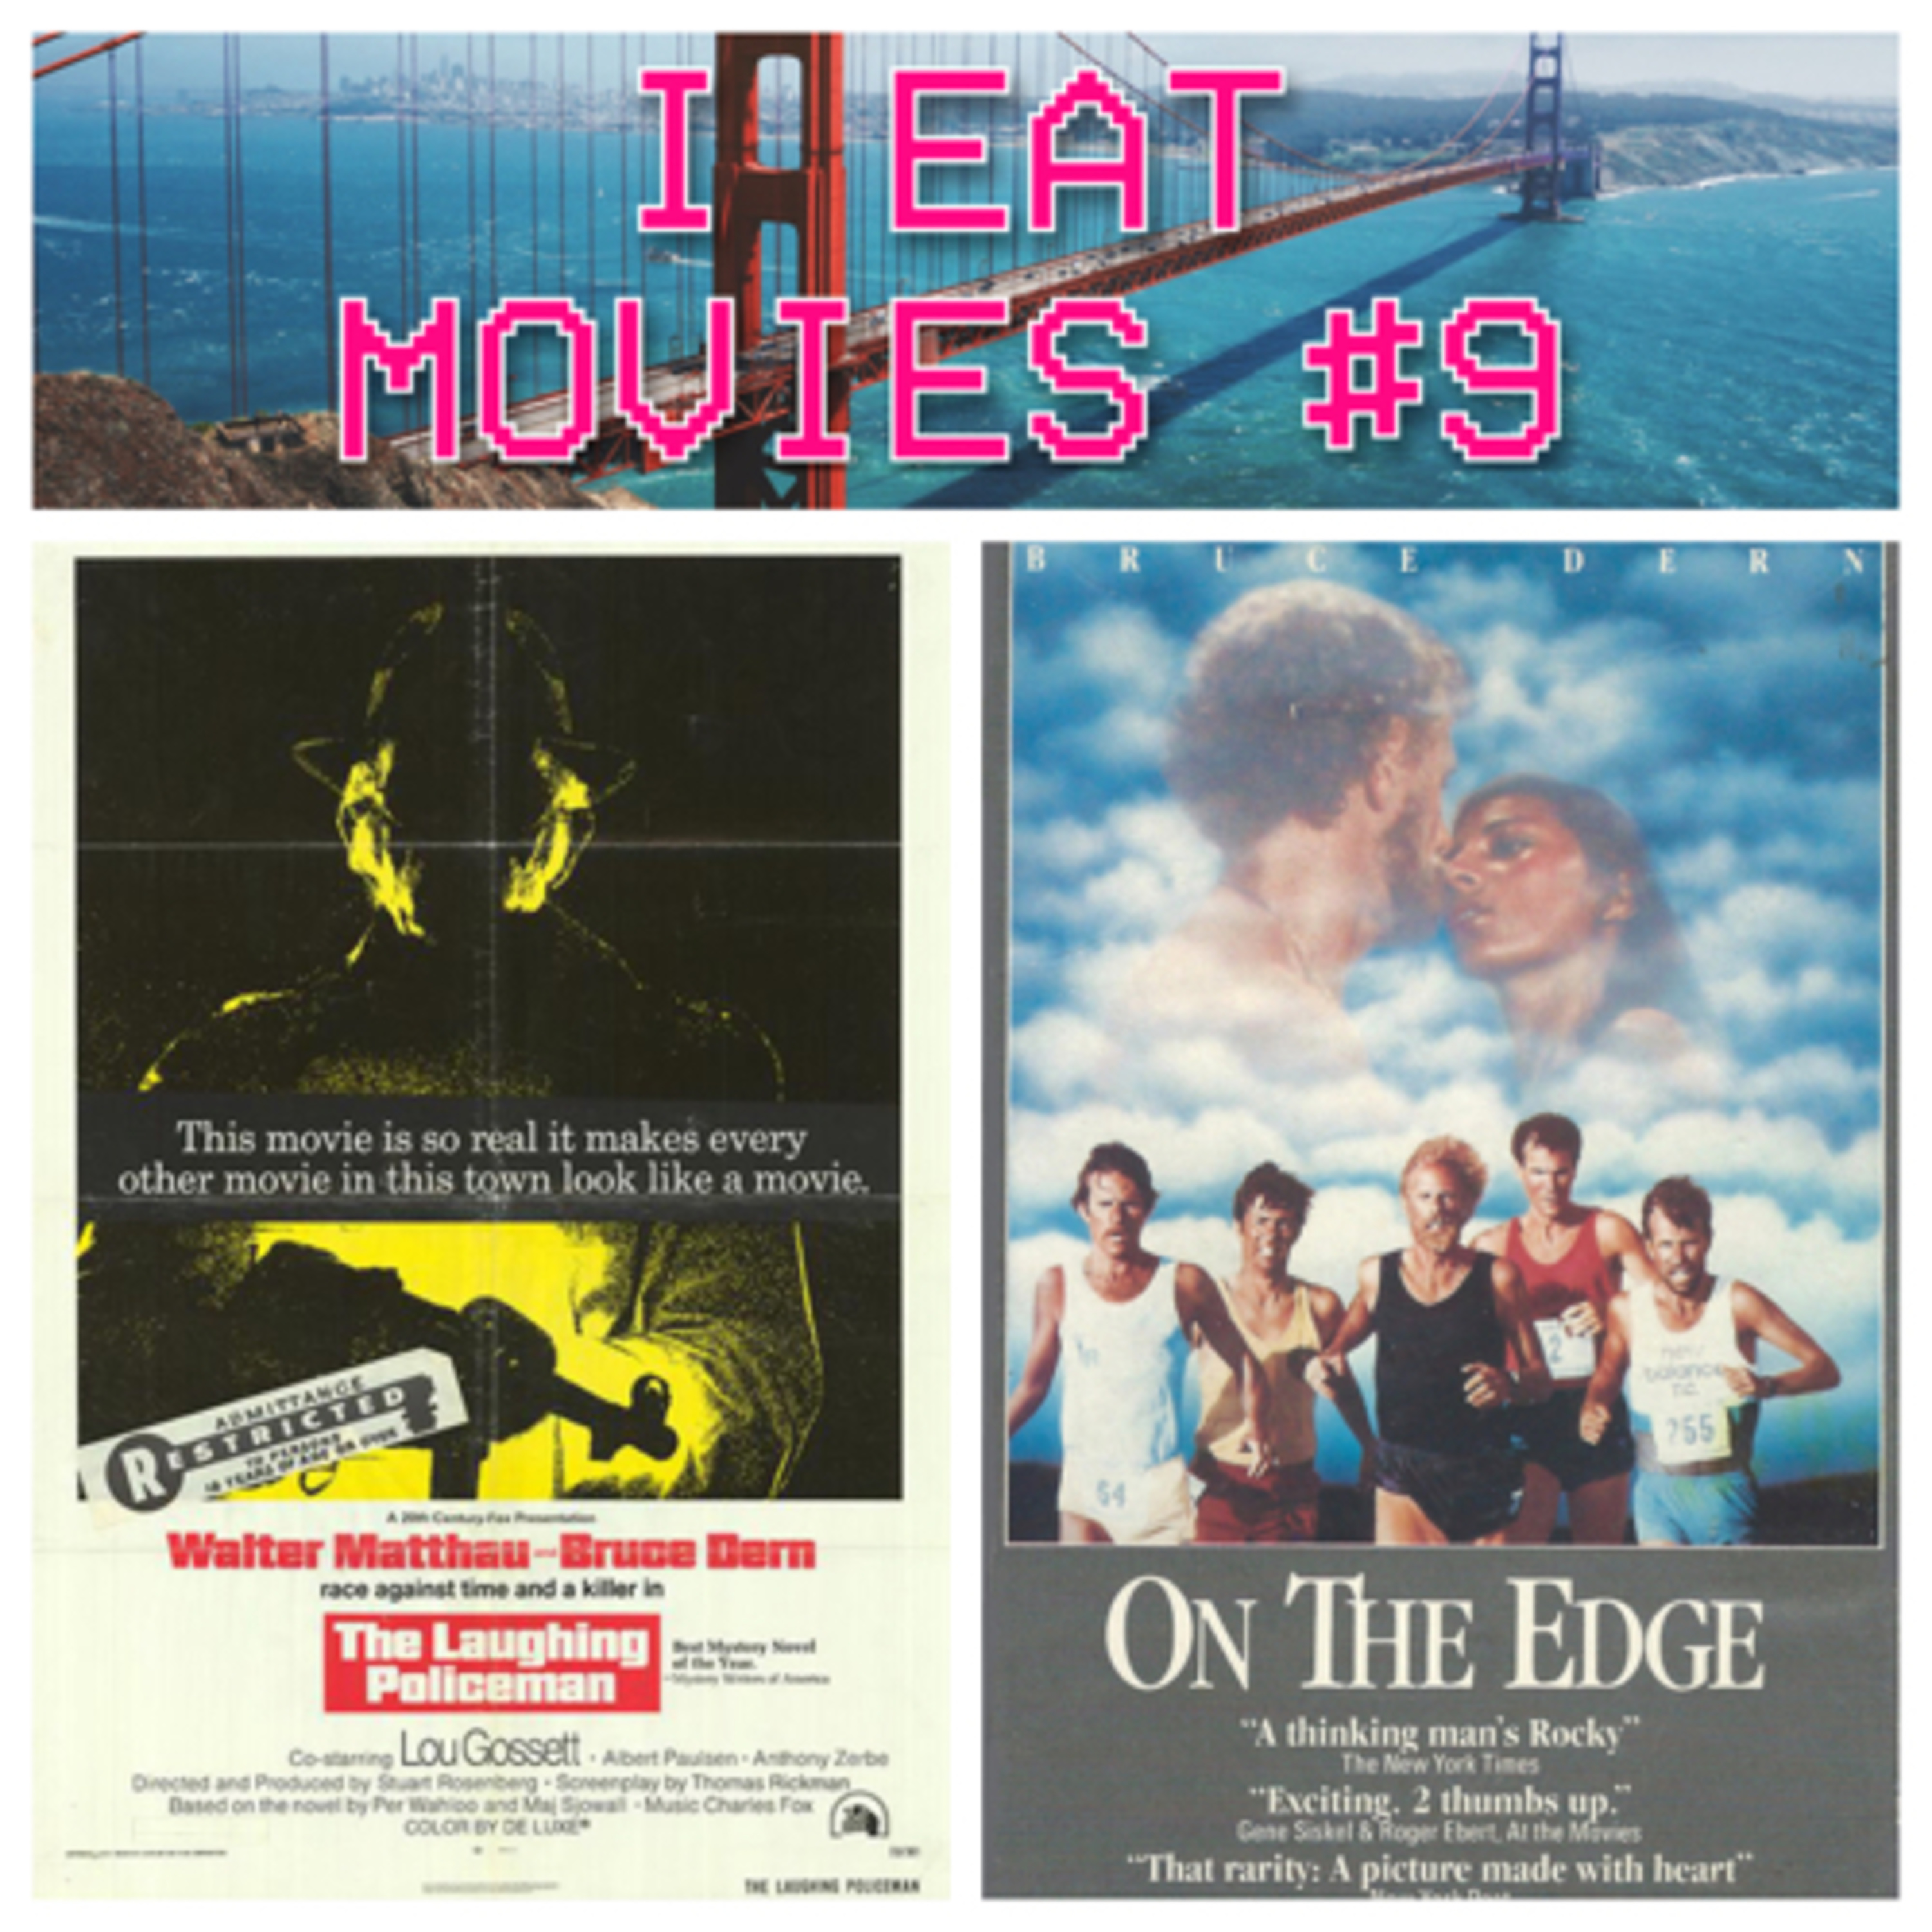 I Eat Movies #9: Dernsie A-Plenty - The Laughing Policeman (1973) / On the Edge (1986)